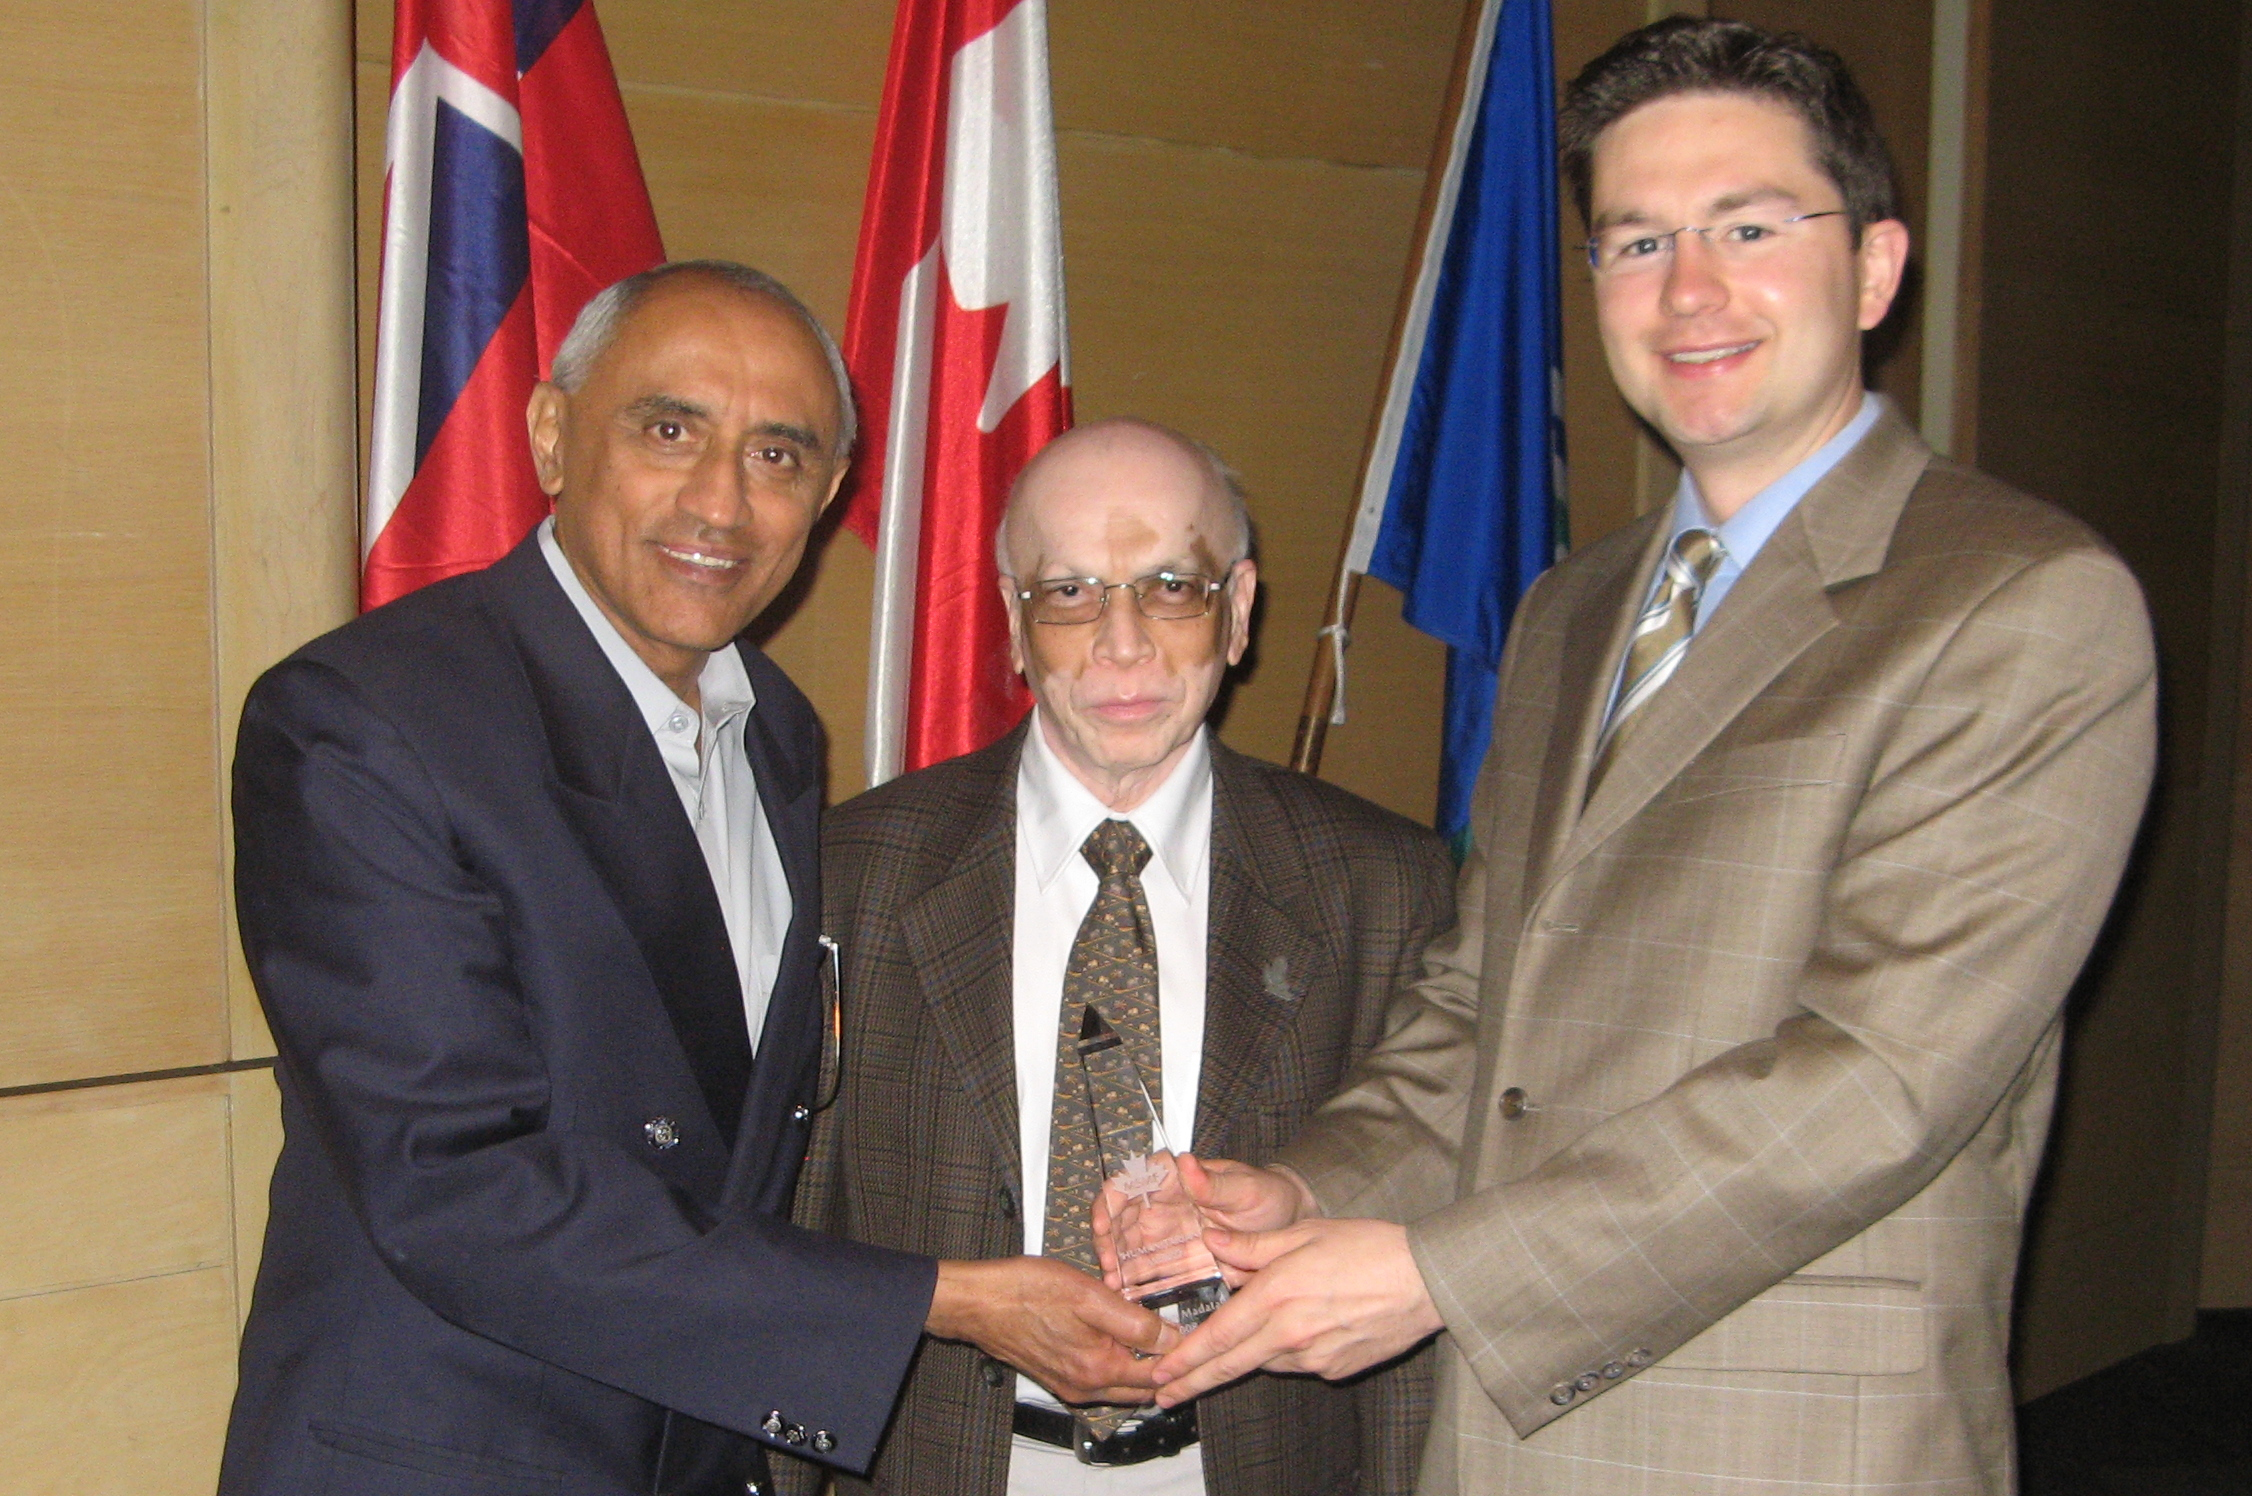 Noordin  Madatali (left) receives the MSMF Humanitarian Award from Dr Chandrasekhar Sankurathri, Founder of MSMF and Canadian Member of Parliament Pierre Poilievre. Photo: Courtesy of Noordin Madatali